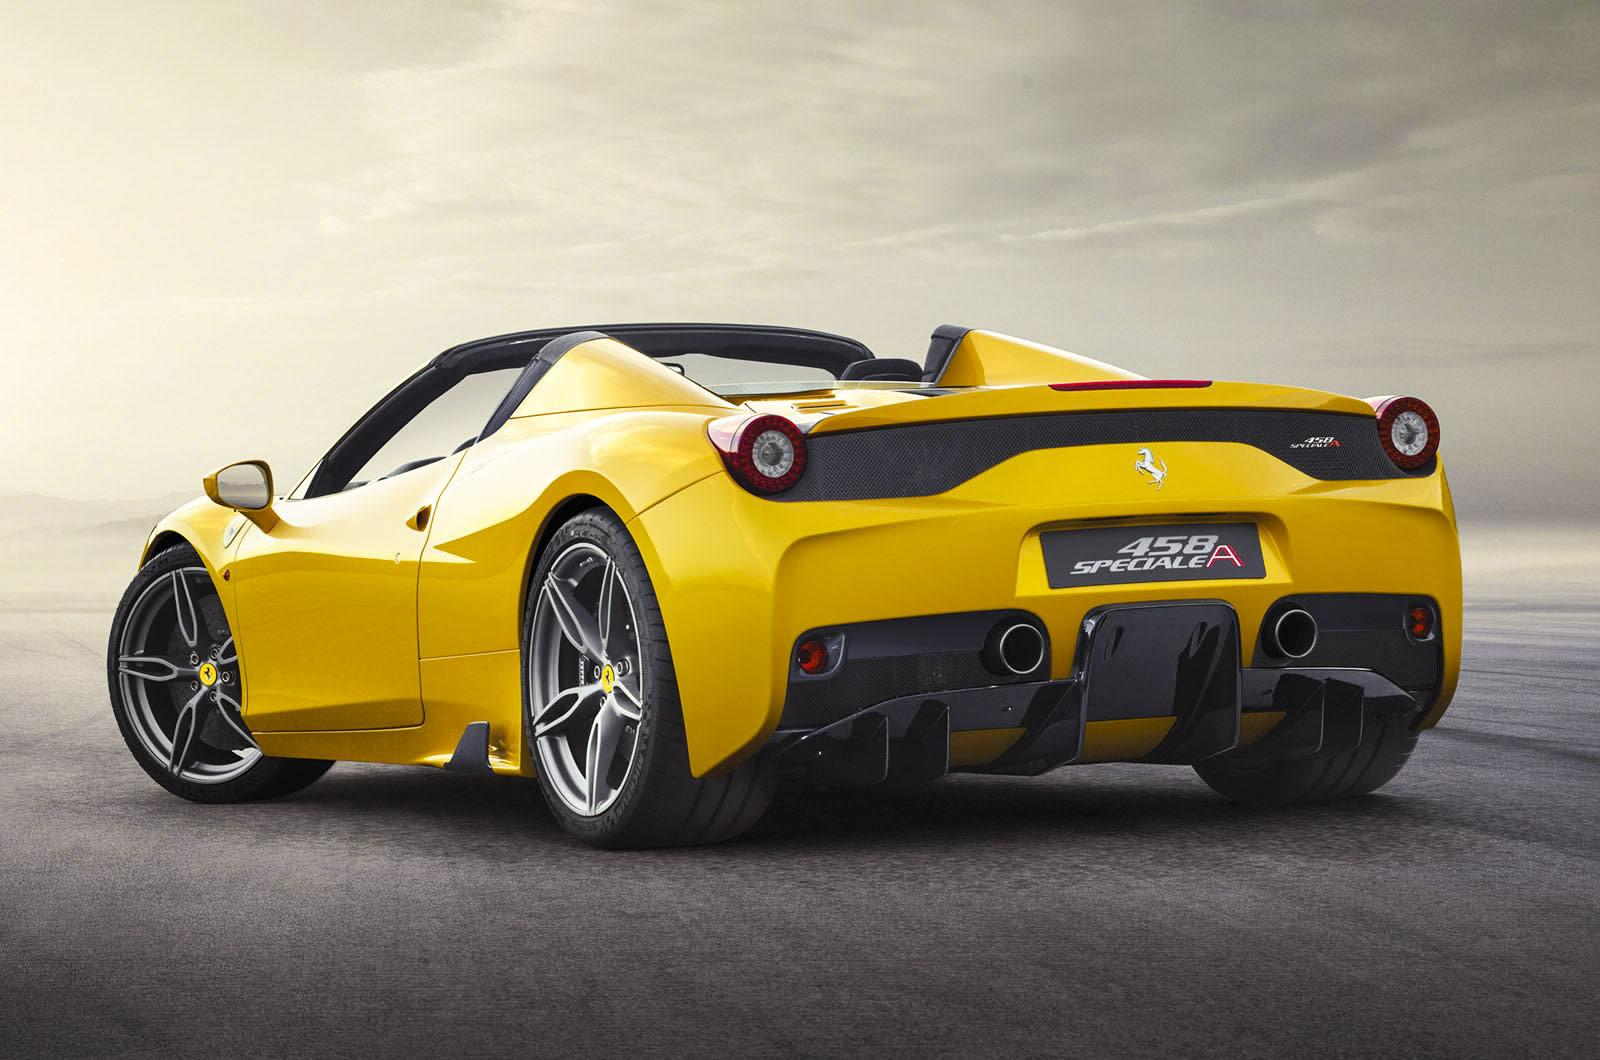 2015 ferrari 458 italia spider speciale aperta unveiled autonews 1. Black Bedroom Furniture Sets. Home Design Ideas